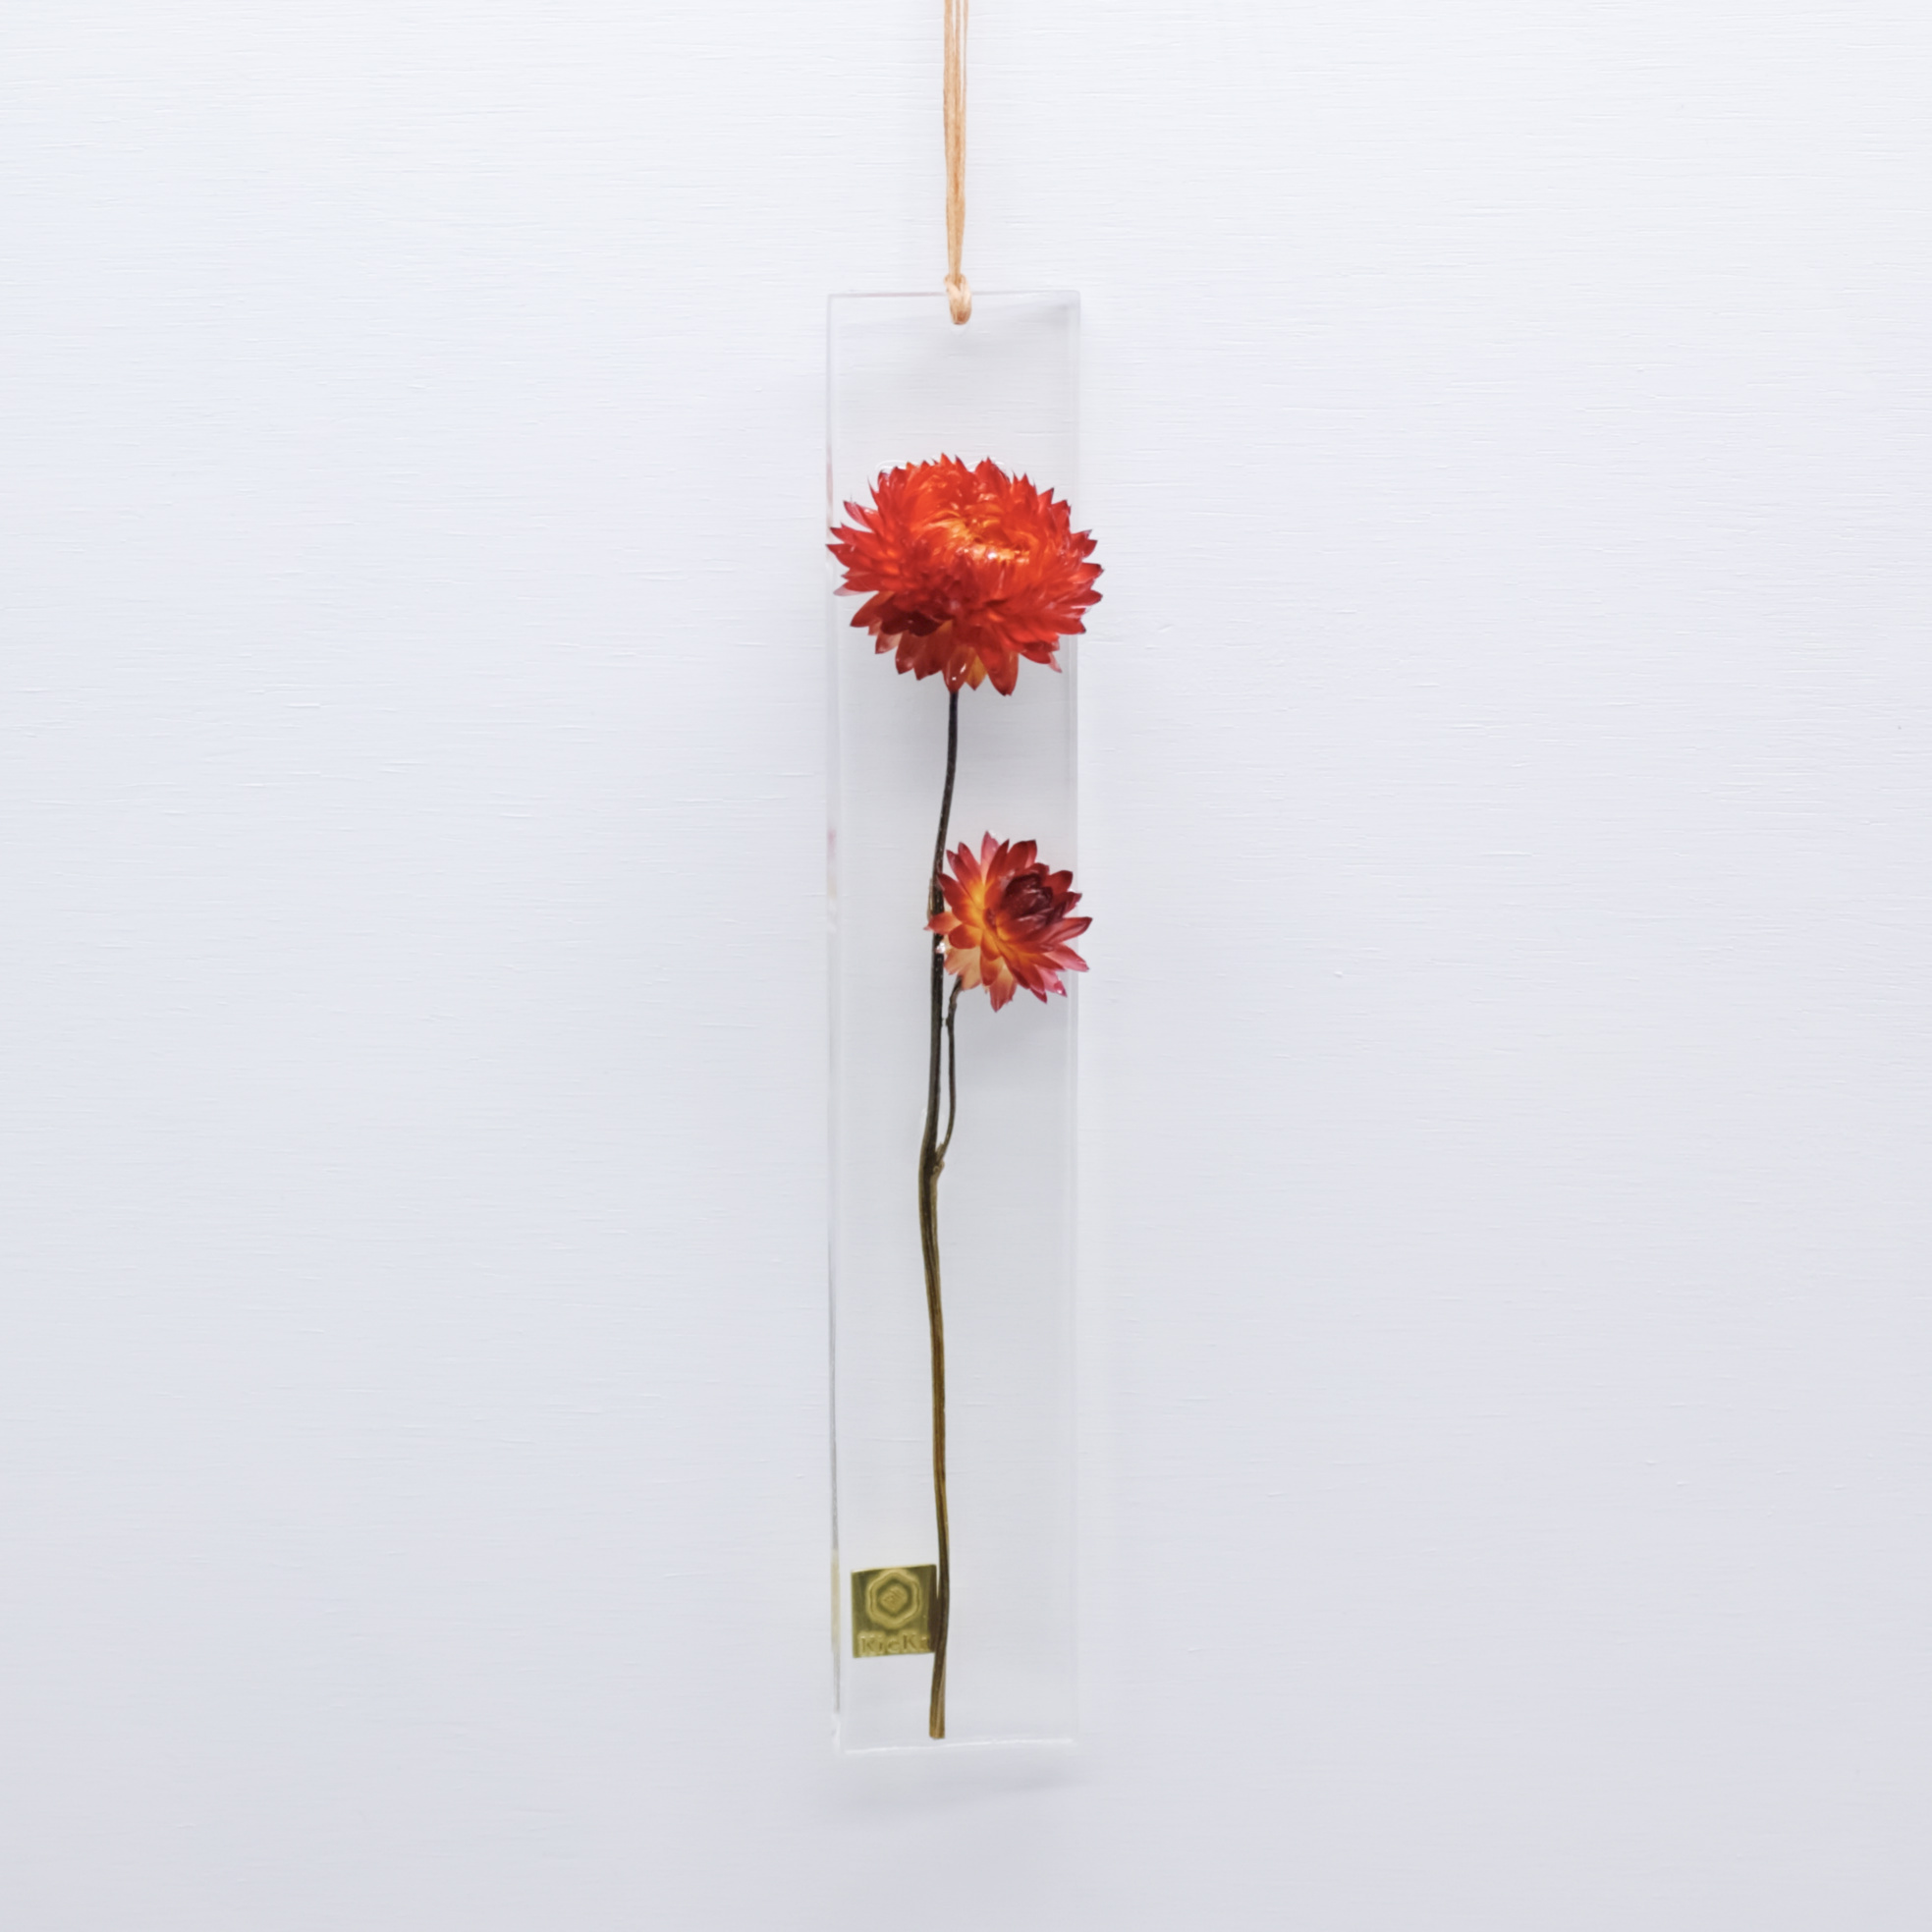 dried flower S ヘリクリサム レッド